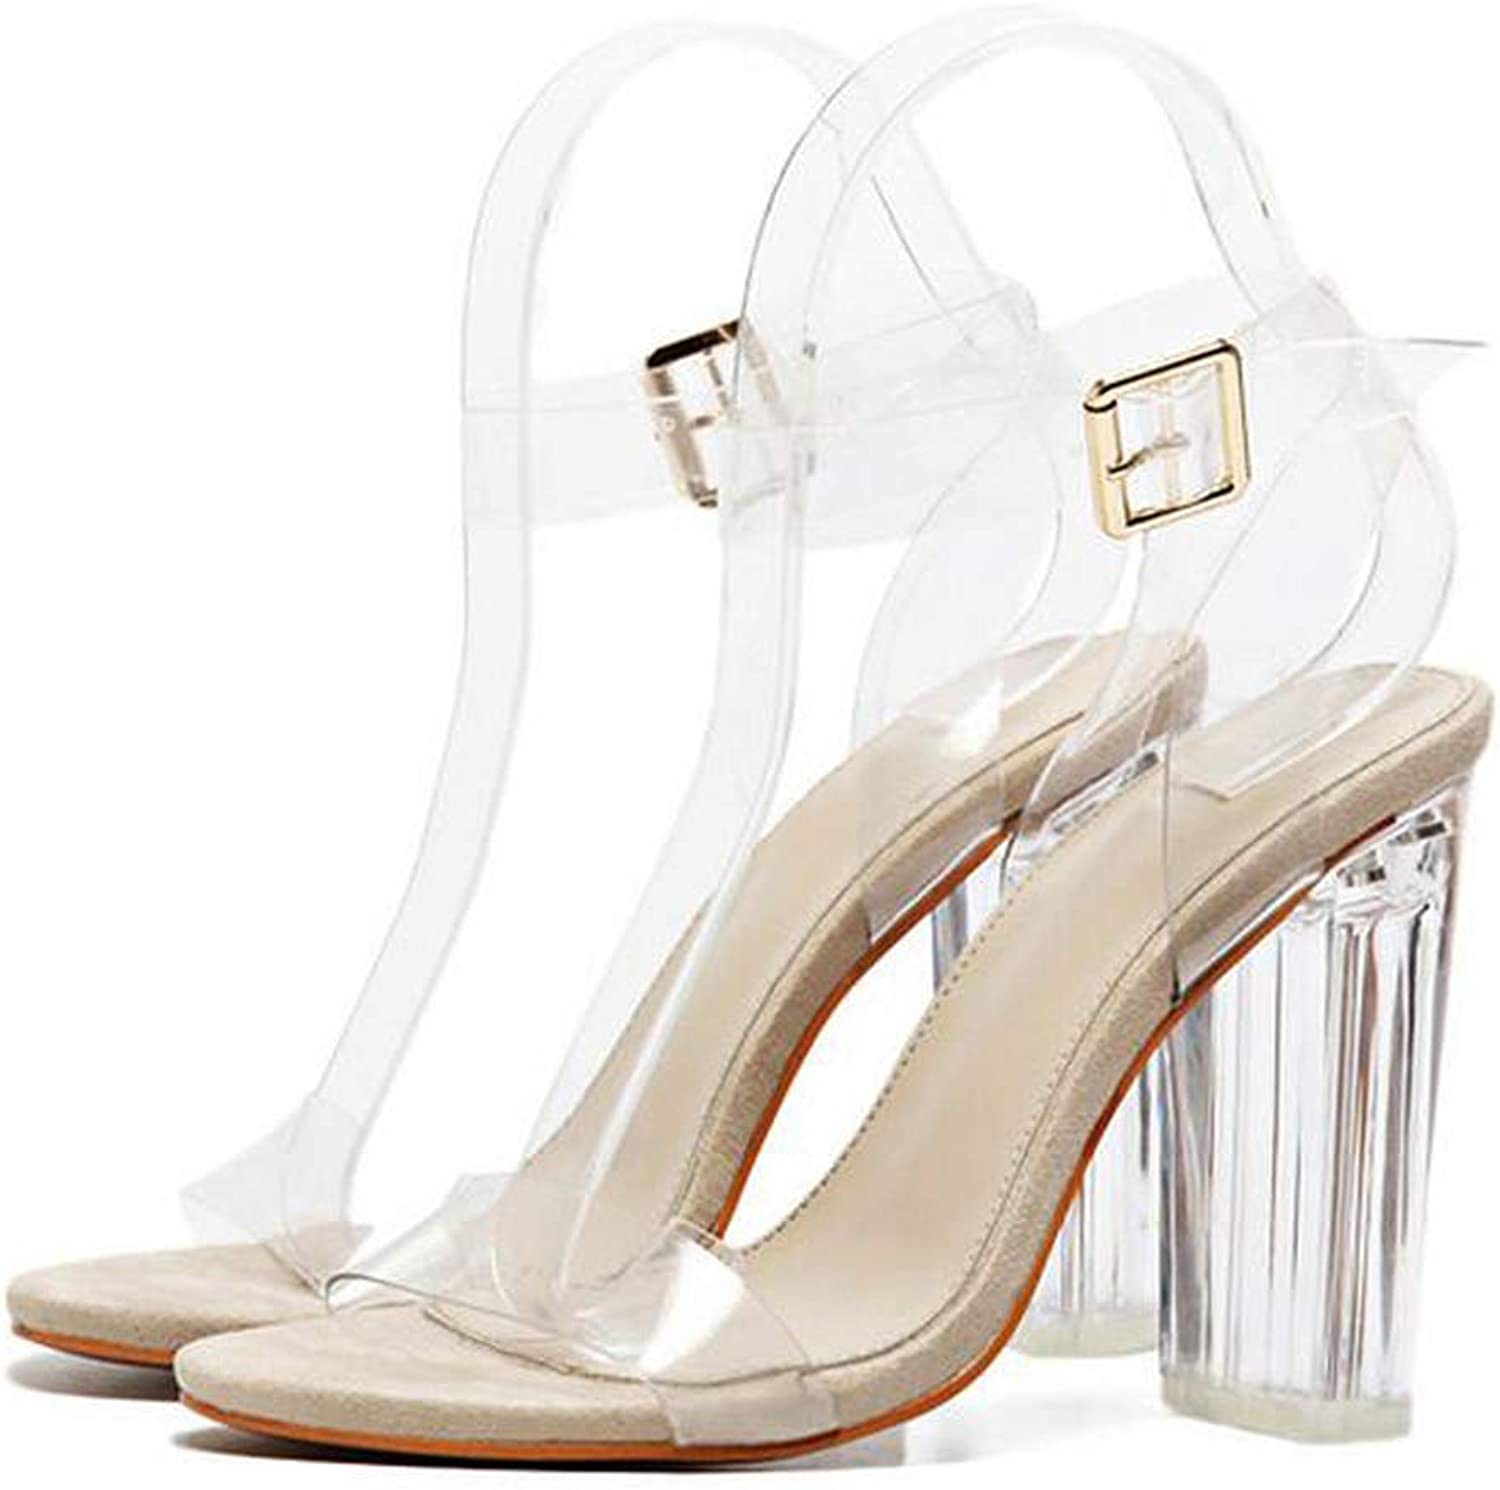 New PVC Sandals Sexy Clear Transparent Ankle Strap High Heels Party Sandals shoes Size 35-42